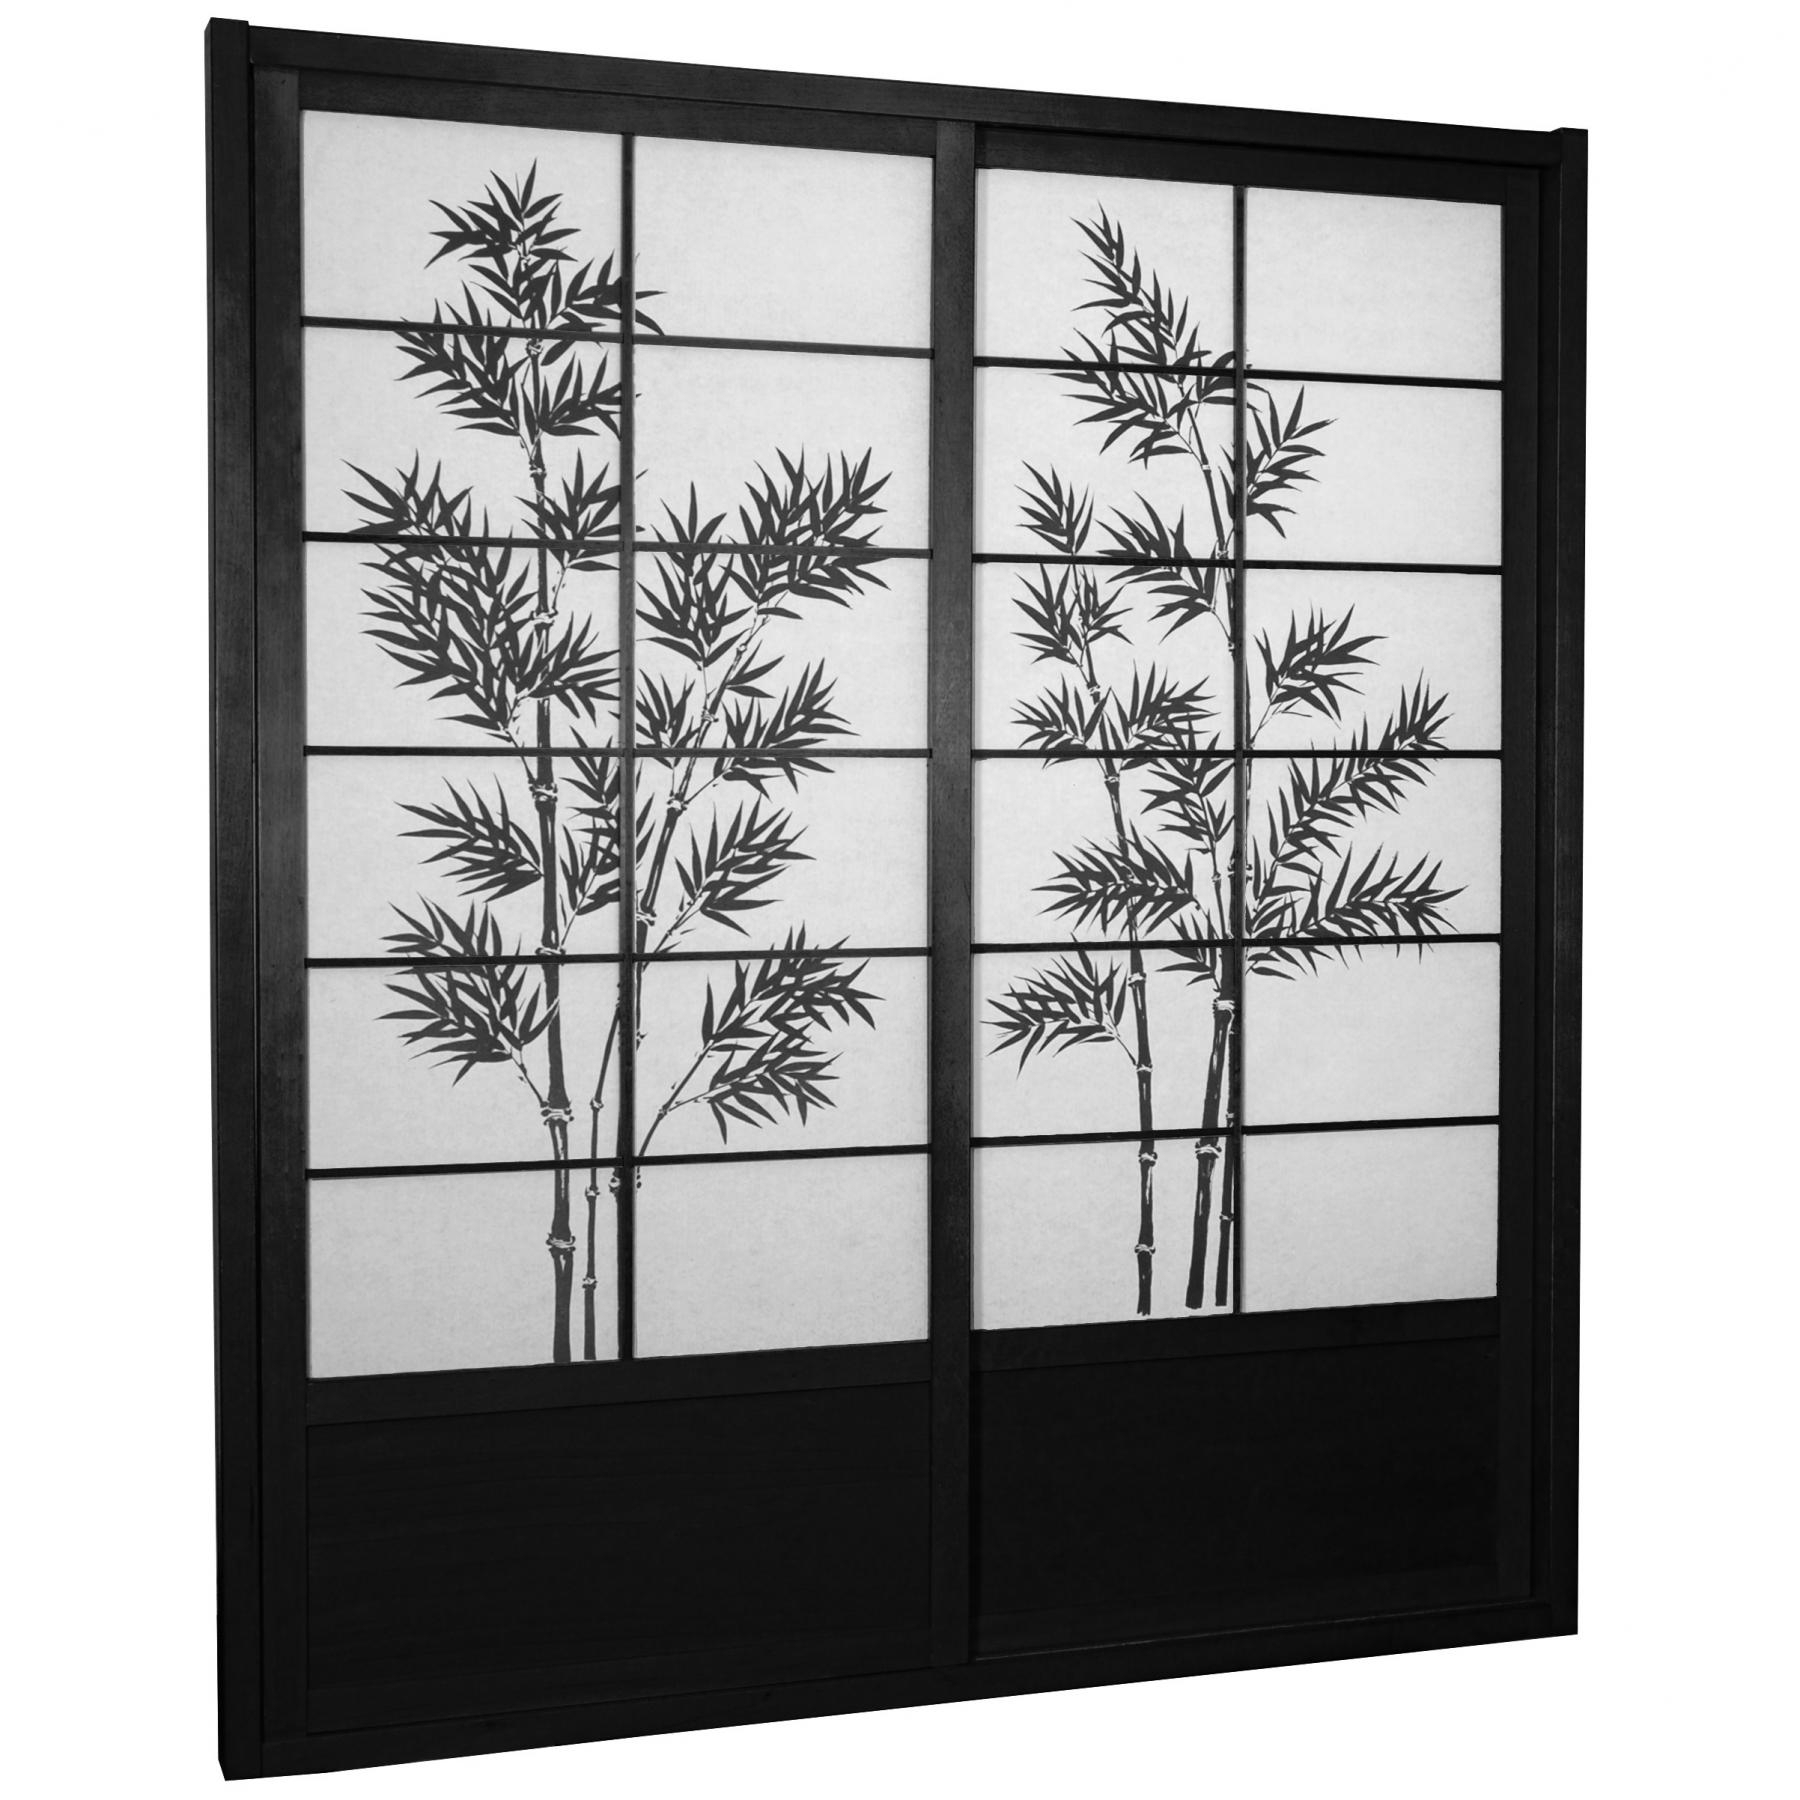 Room Dividers And Privacy Screens – Over 1,500 Unique Styles Available Regarding Room Dividers & Decorative Screens Ideas (Image 8 of 12)